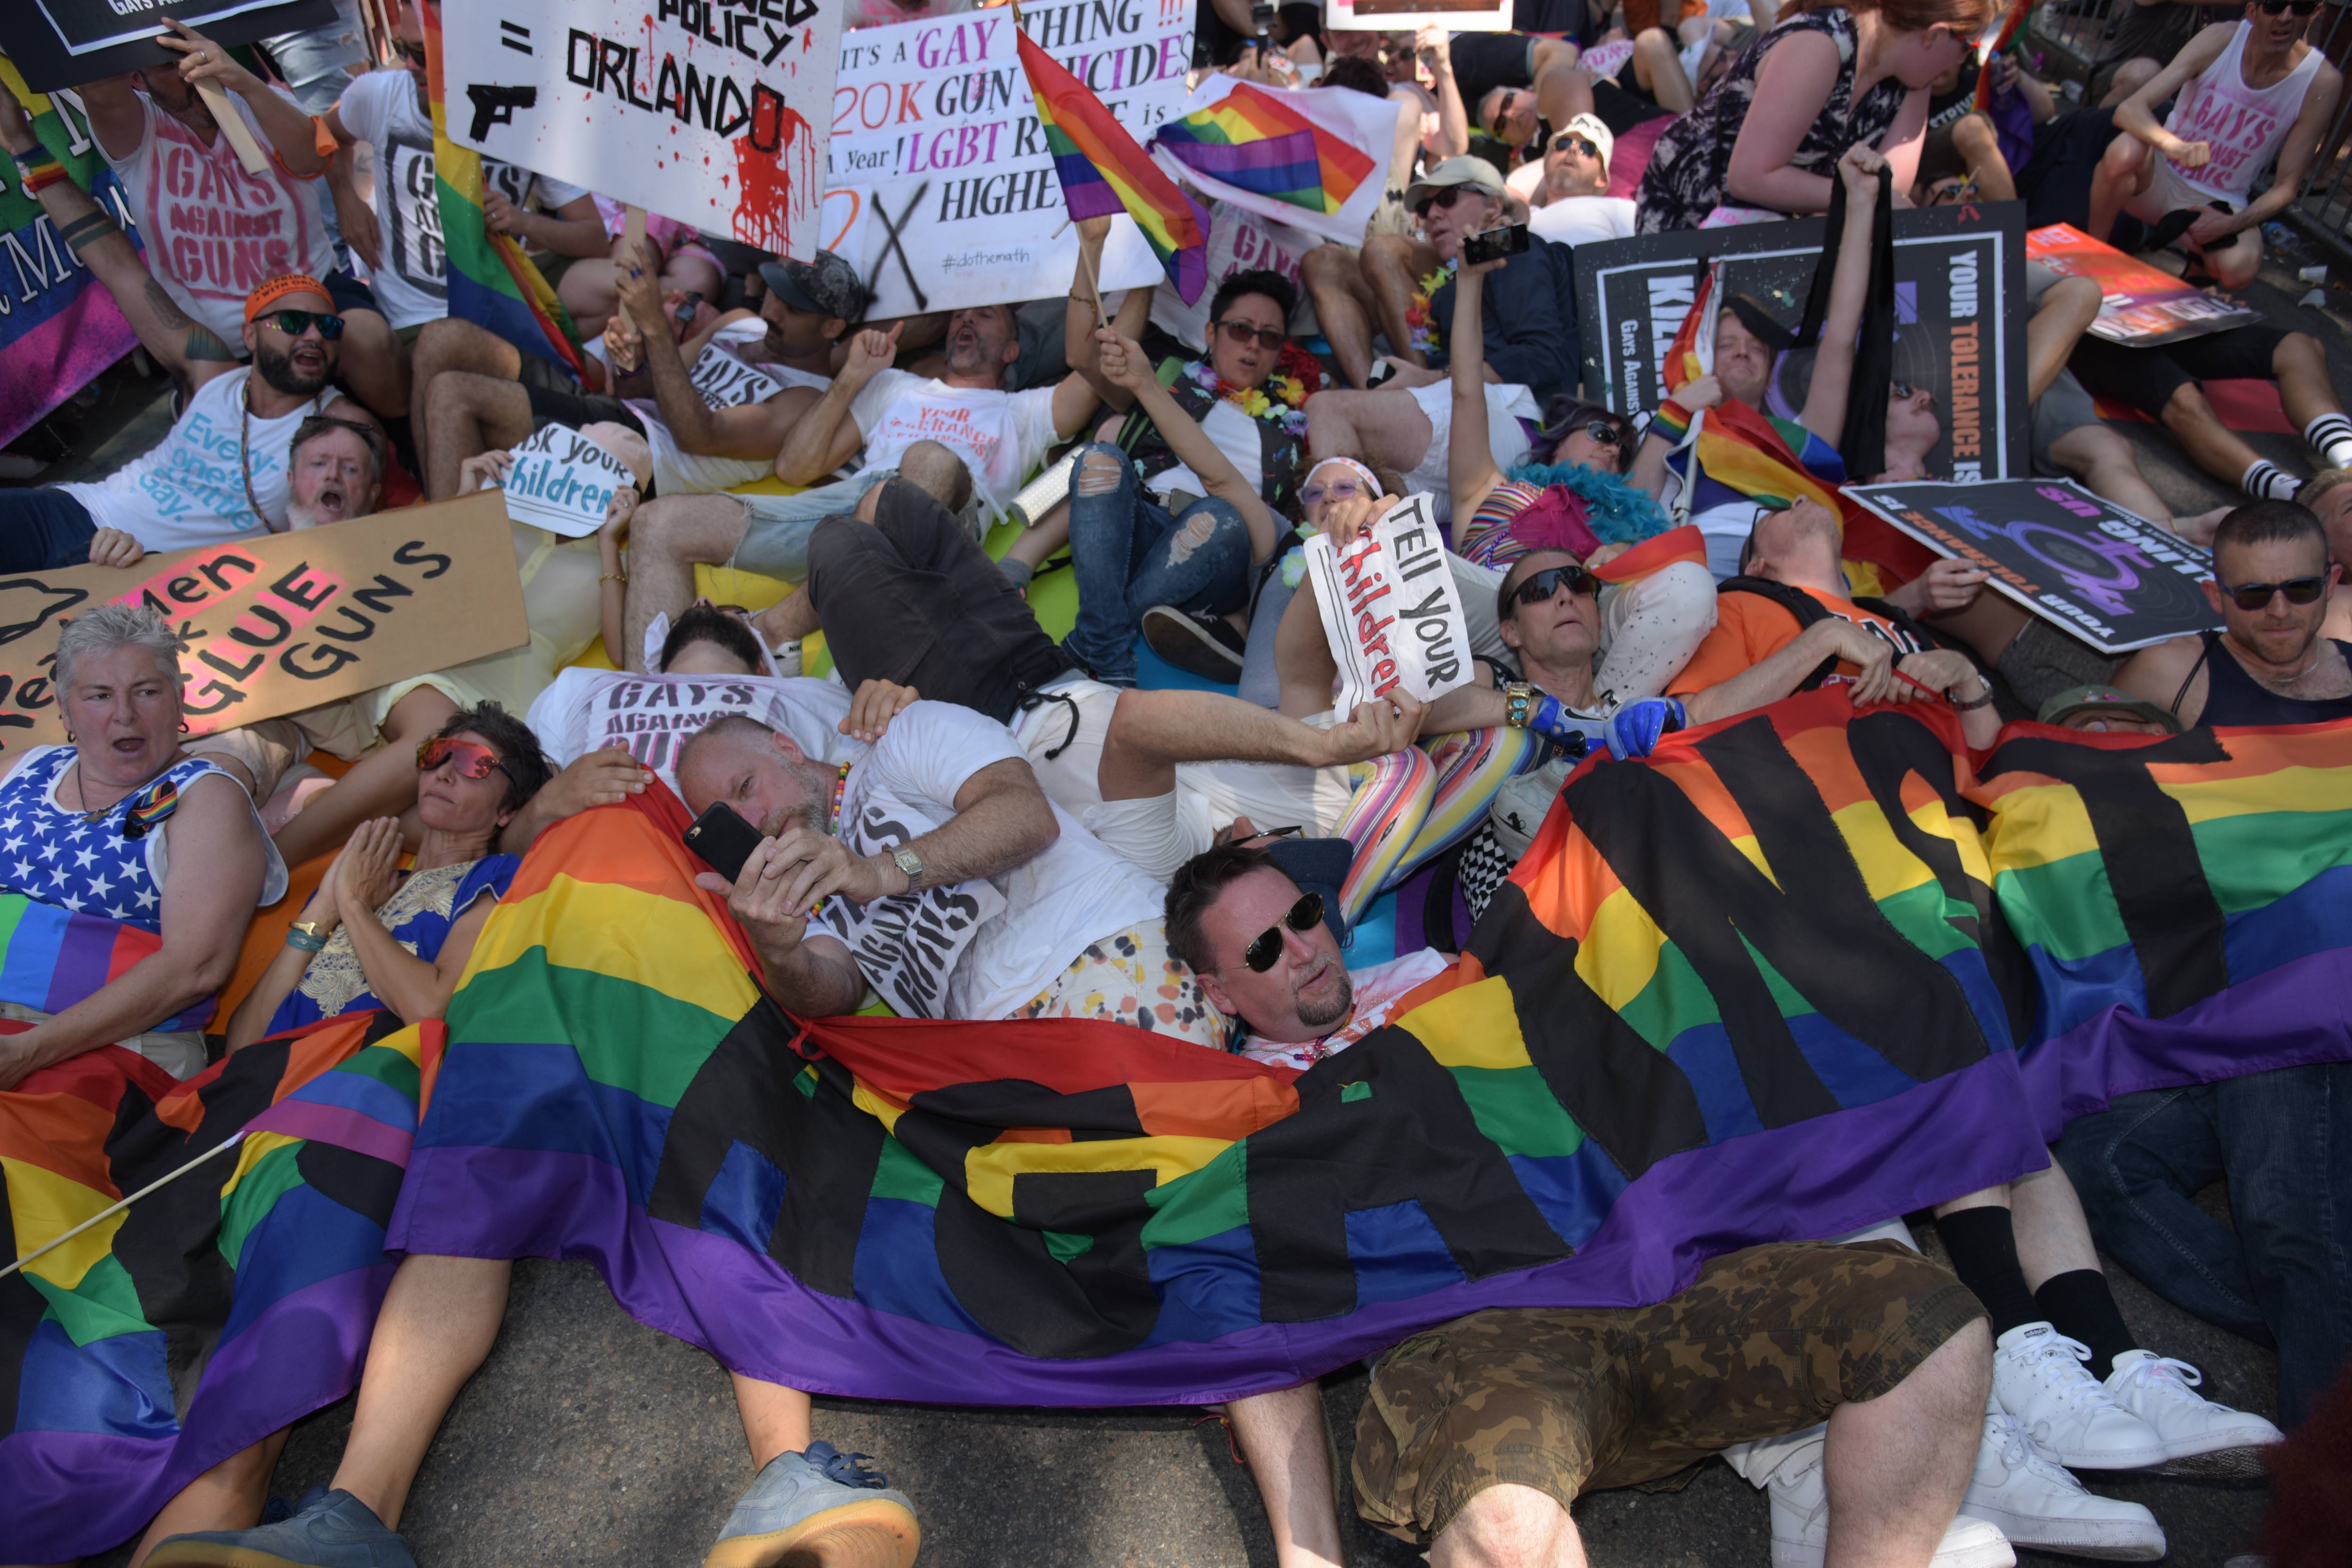 Gays against Guns stages die in before Stonewall Inn. The